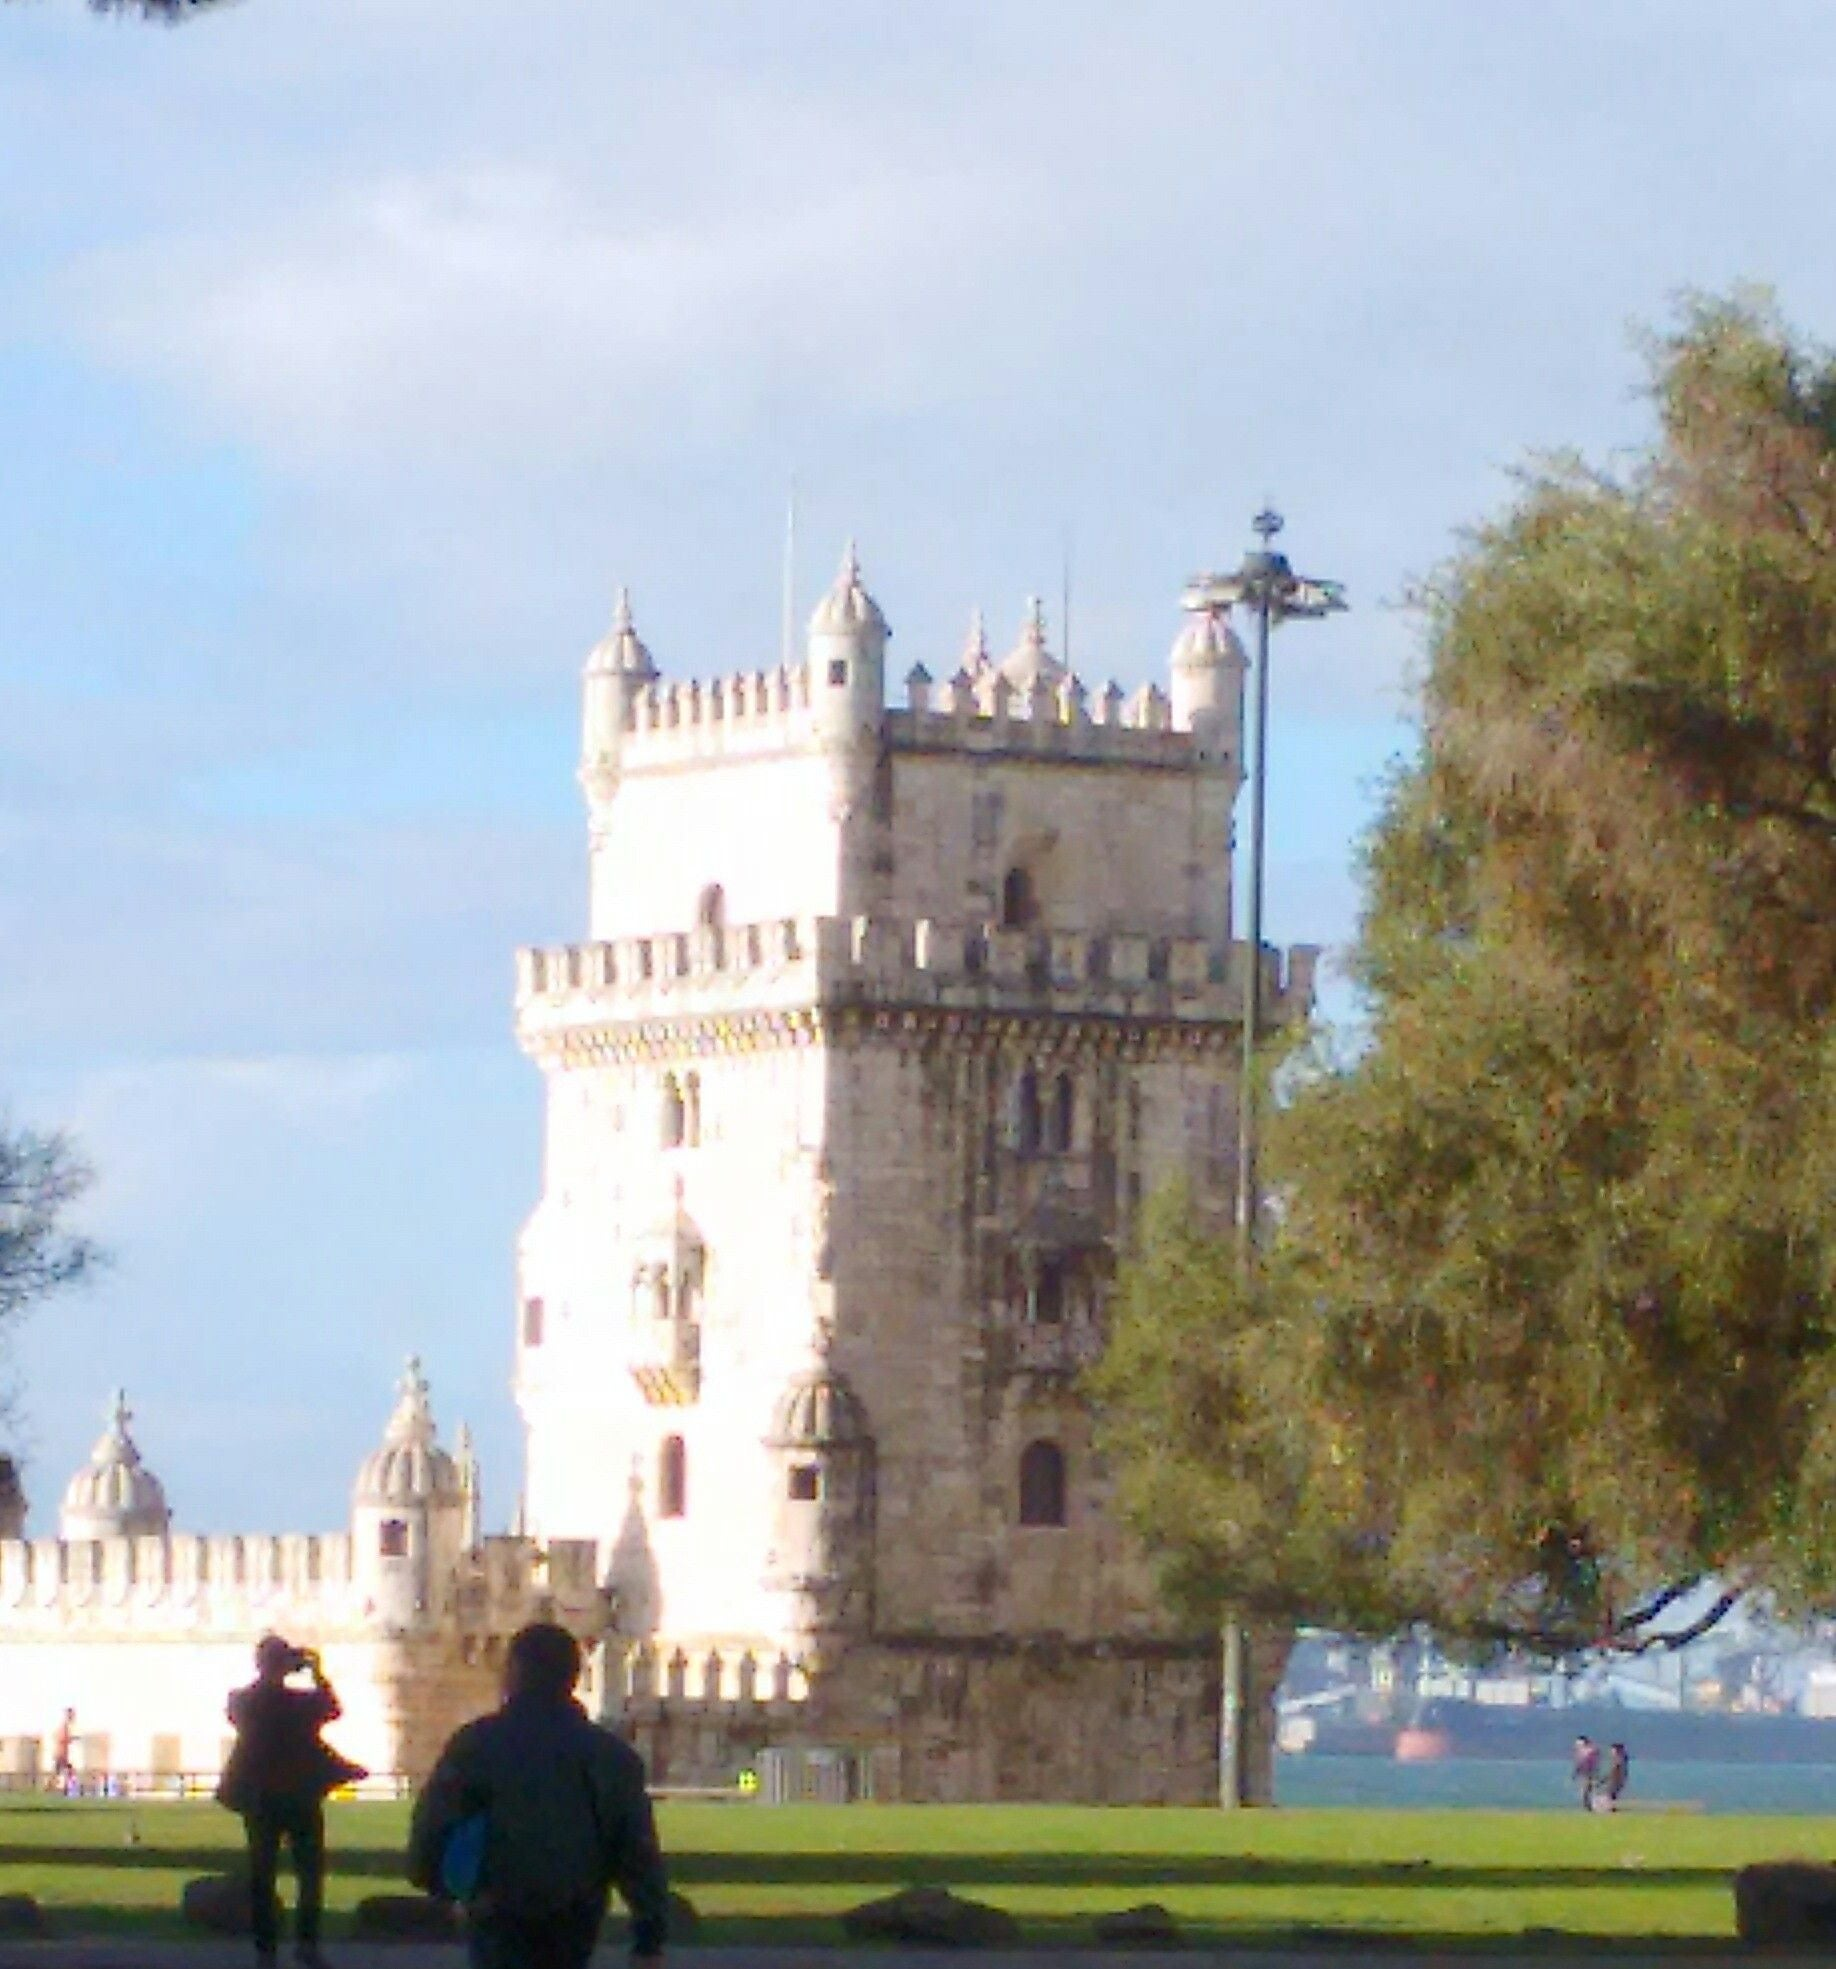 Building in Belém Tower